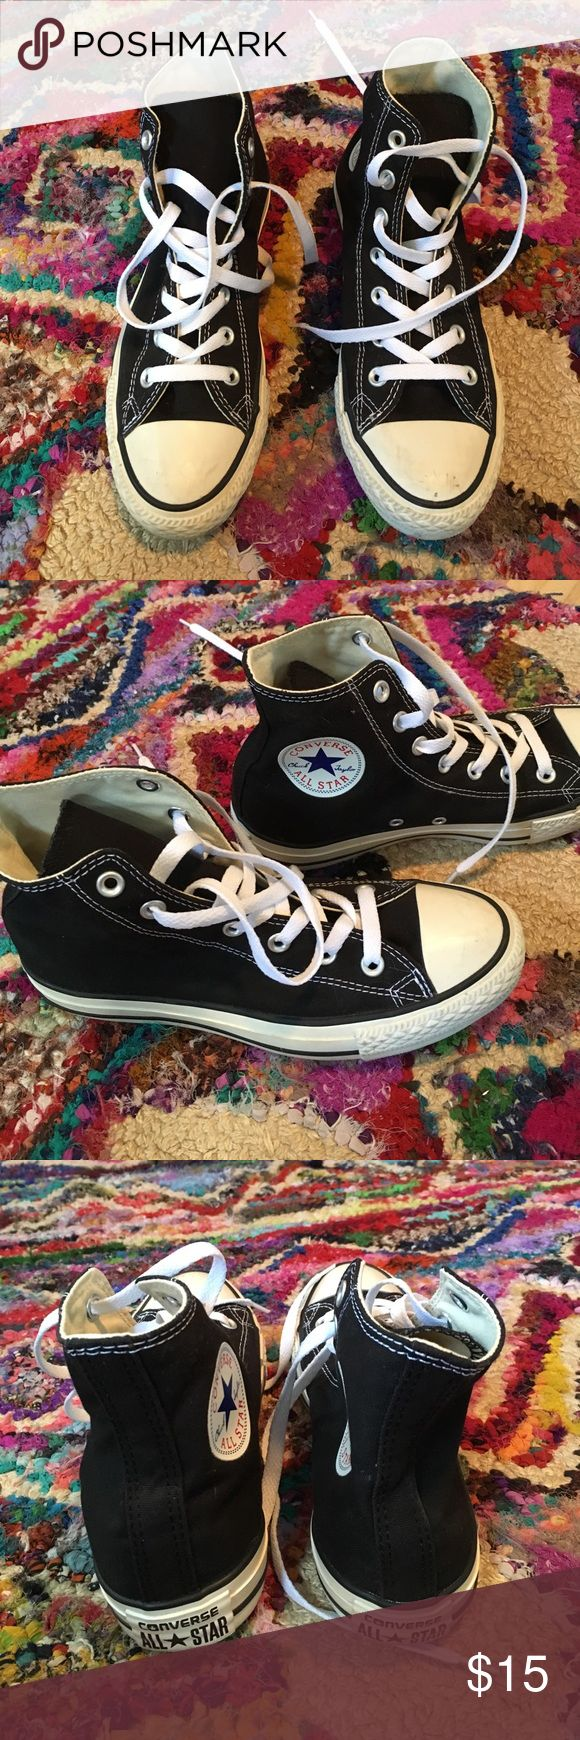 Black high top converse sneakers Only worn once before converse high top sneaker!!! Slight scuffing on toe but probably could get off!! In great condition Converse Shoes Sneakers